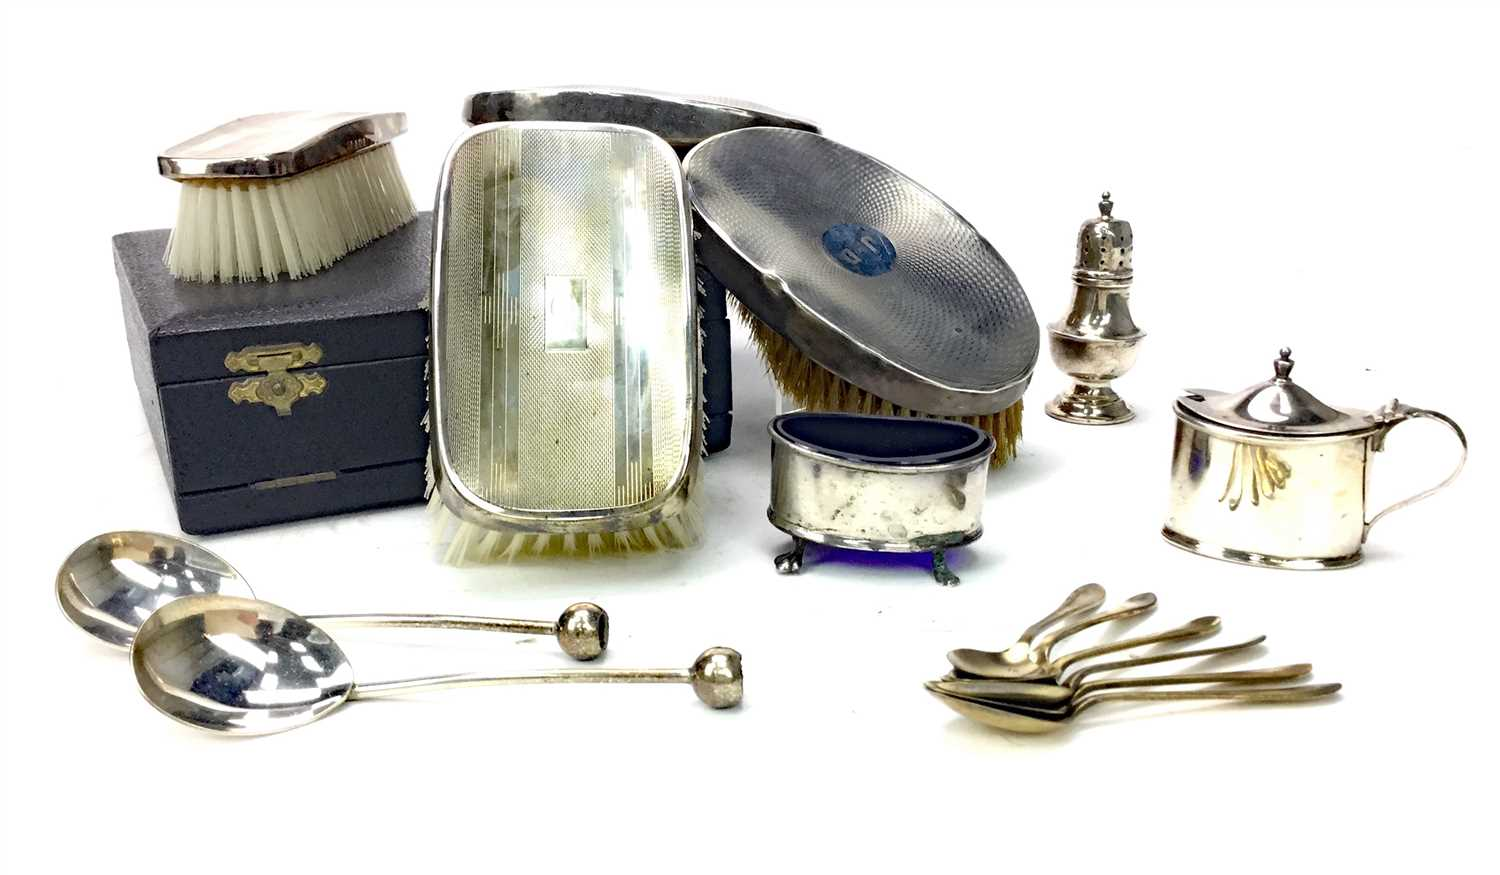 Lot 842-SILVER BRUSH SET, BRUSHES AND CONDIMENTS